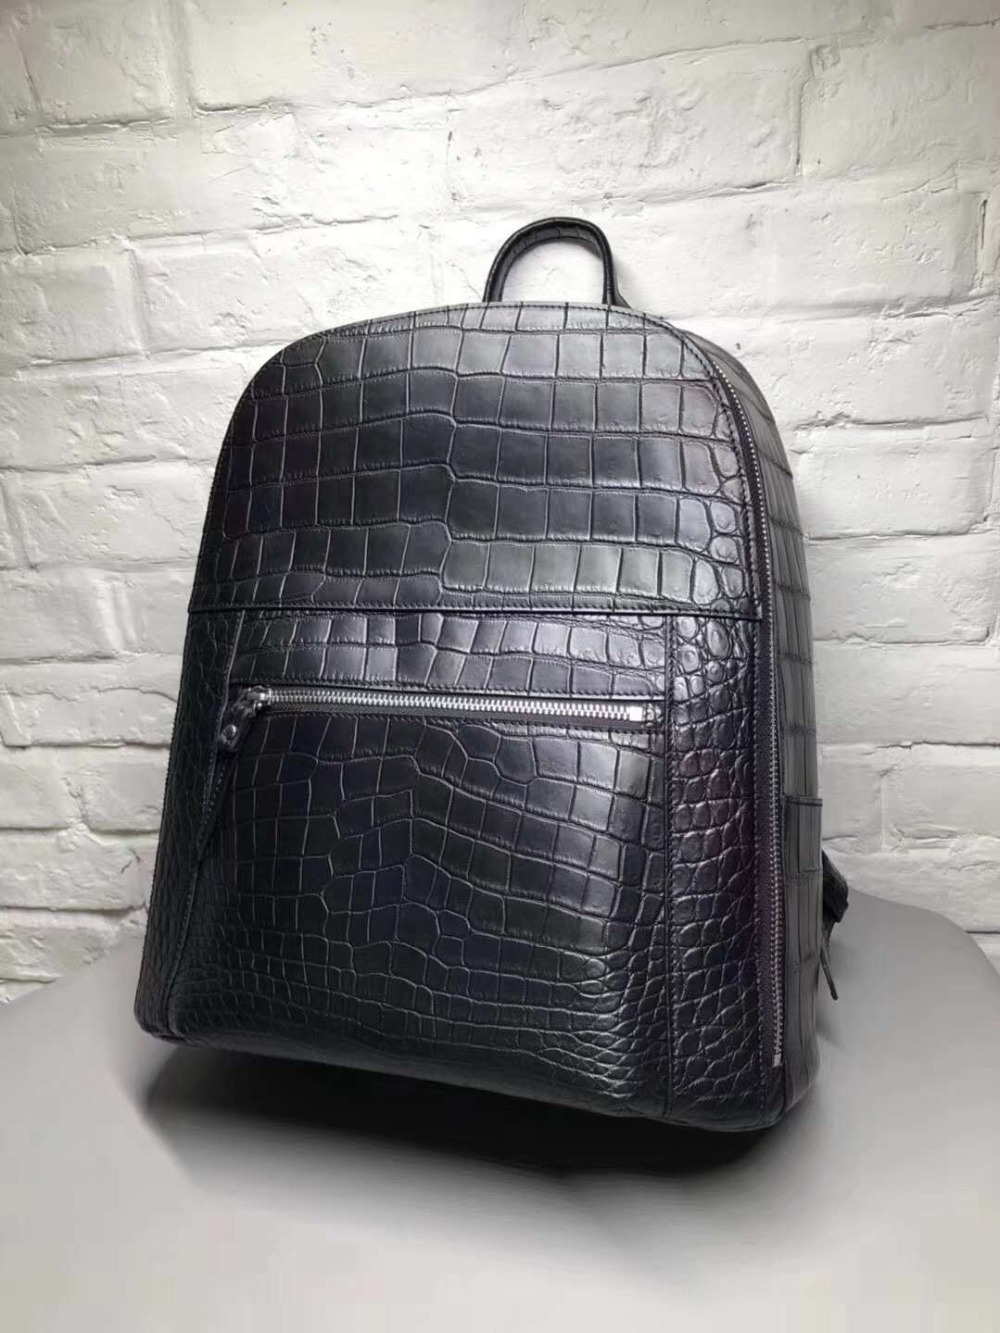 100% Genuine Real Crocodile Belly Skin Backpack Bag Matt Water Dyeing Crocodile Skin High End Quality Fashion Backpack Bag Black